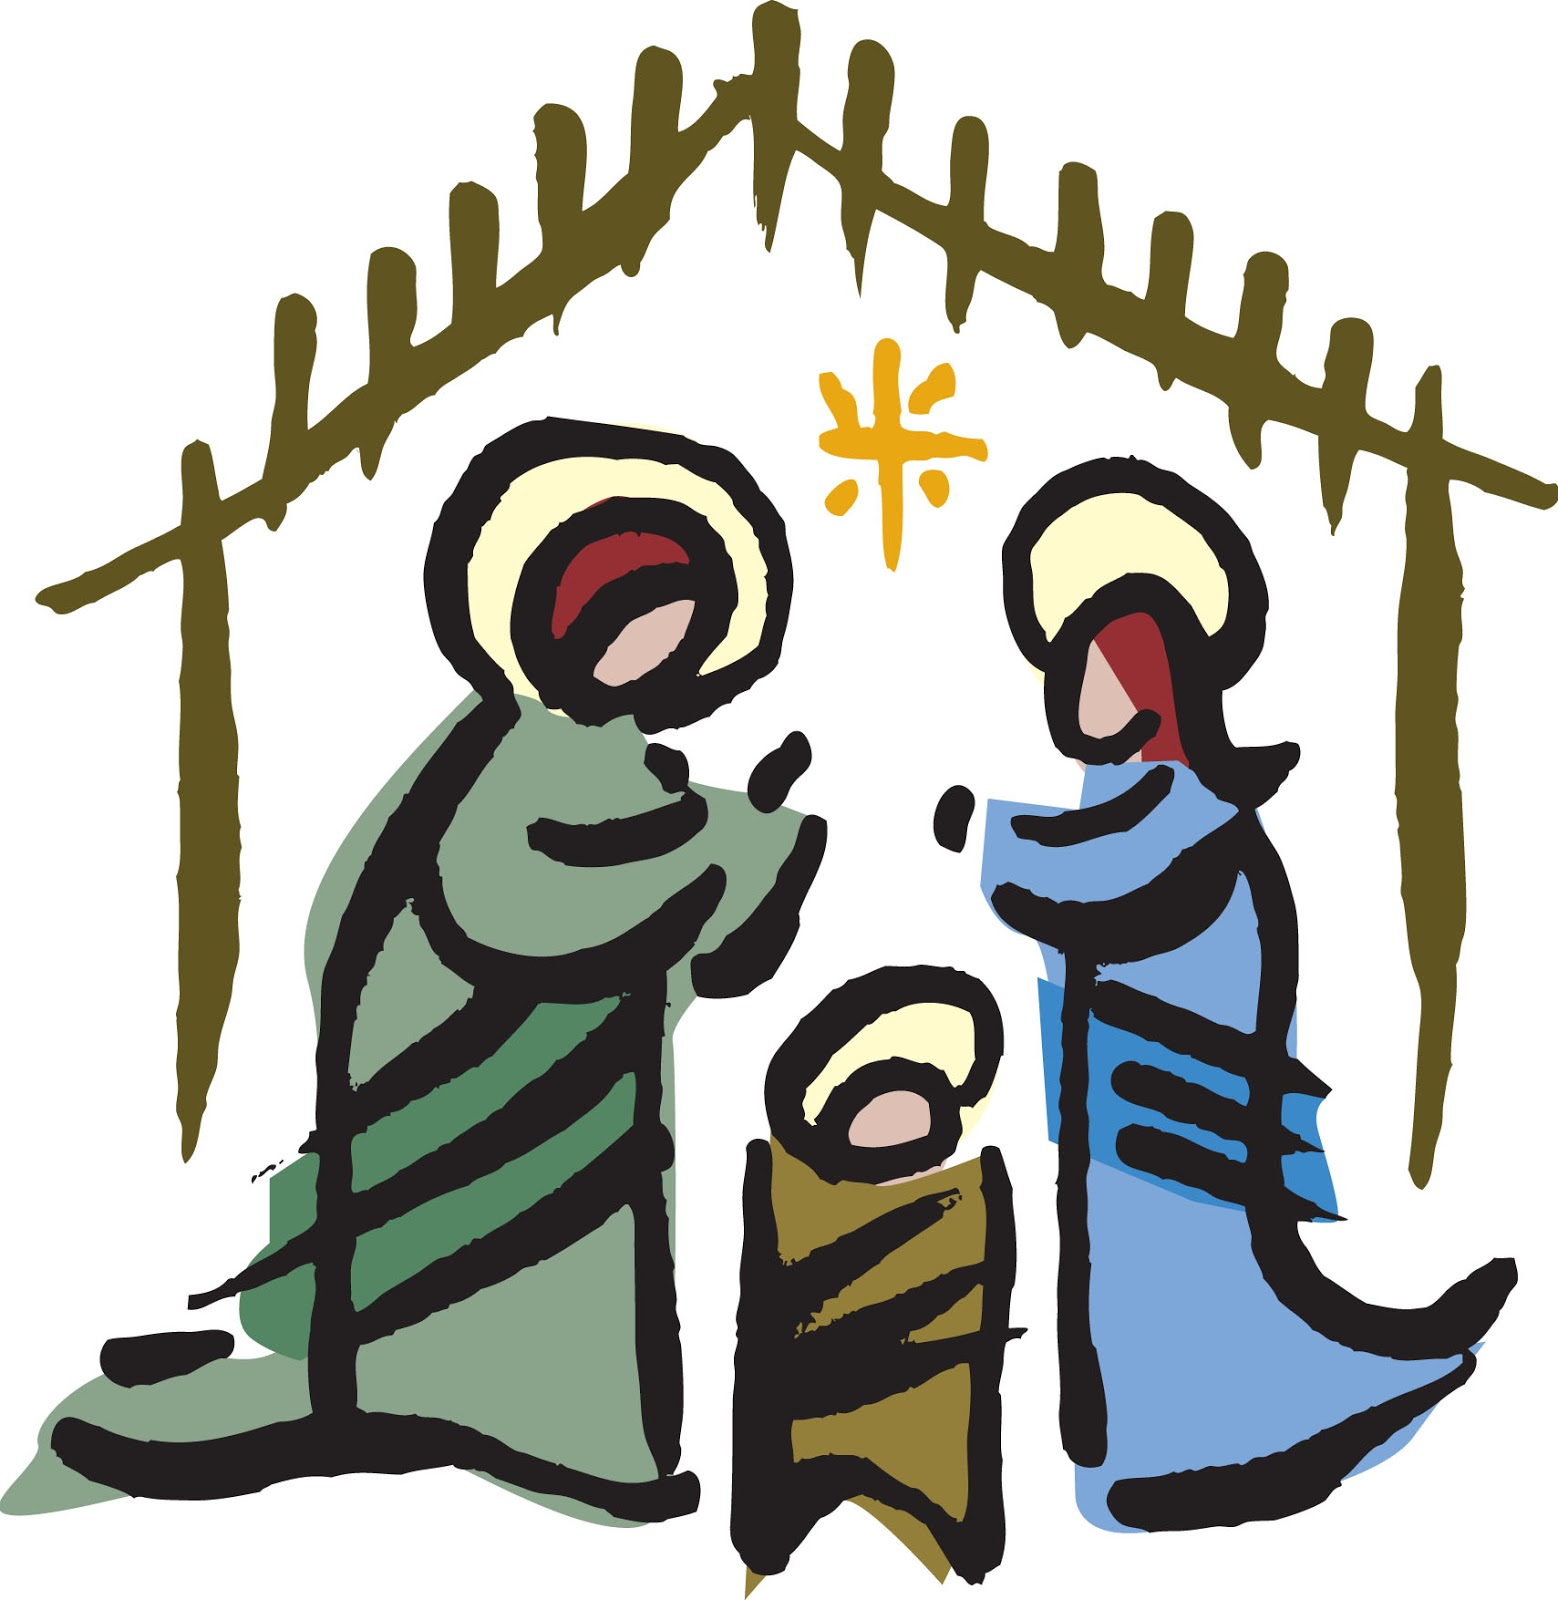 December clipart scene. Christmas nativity at getdrawings